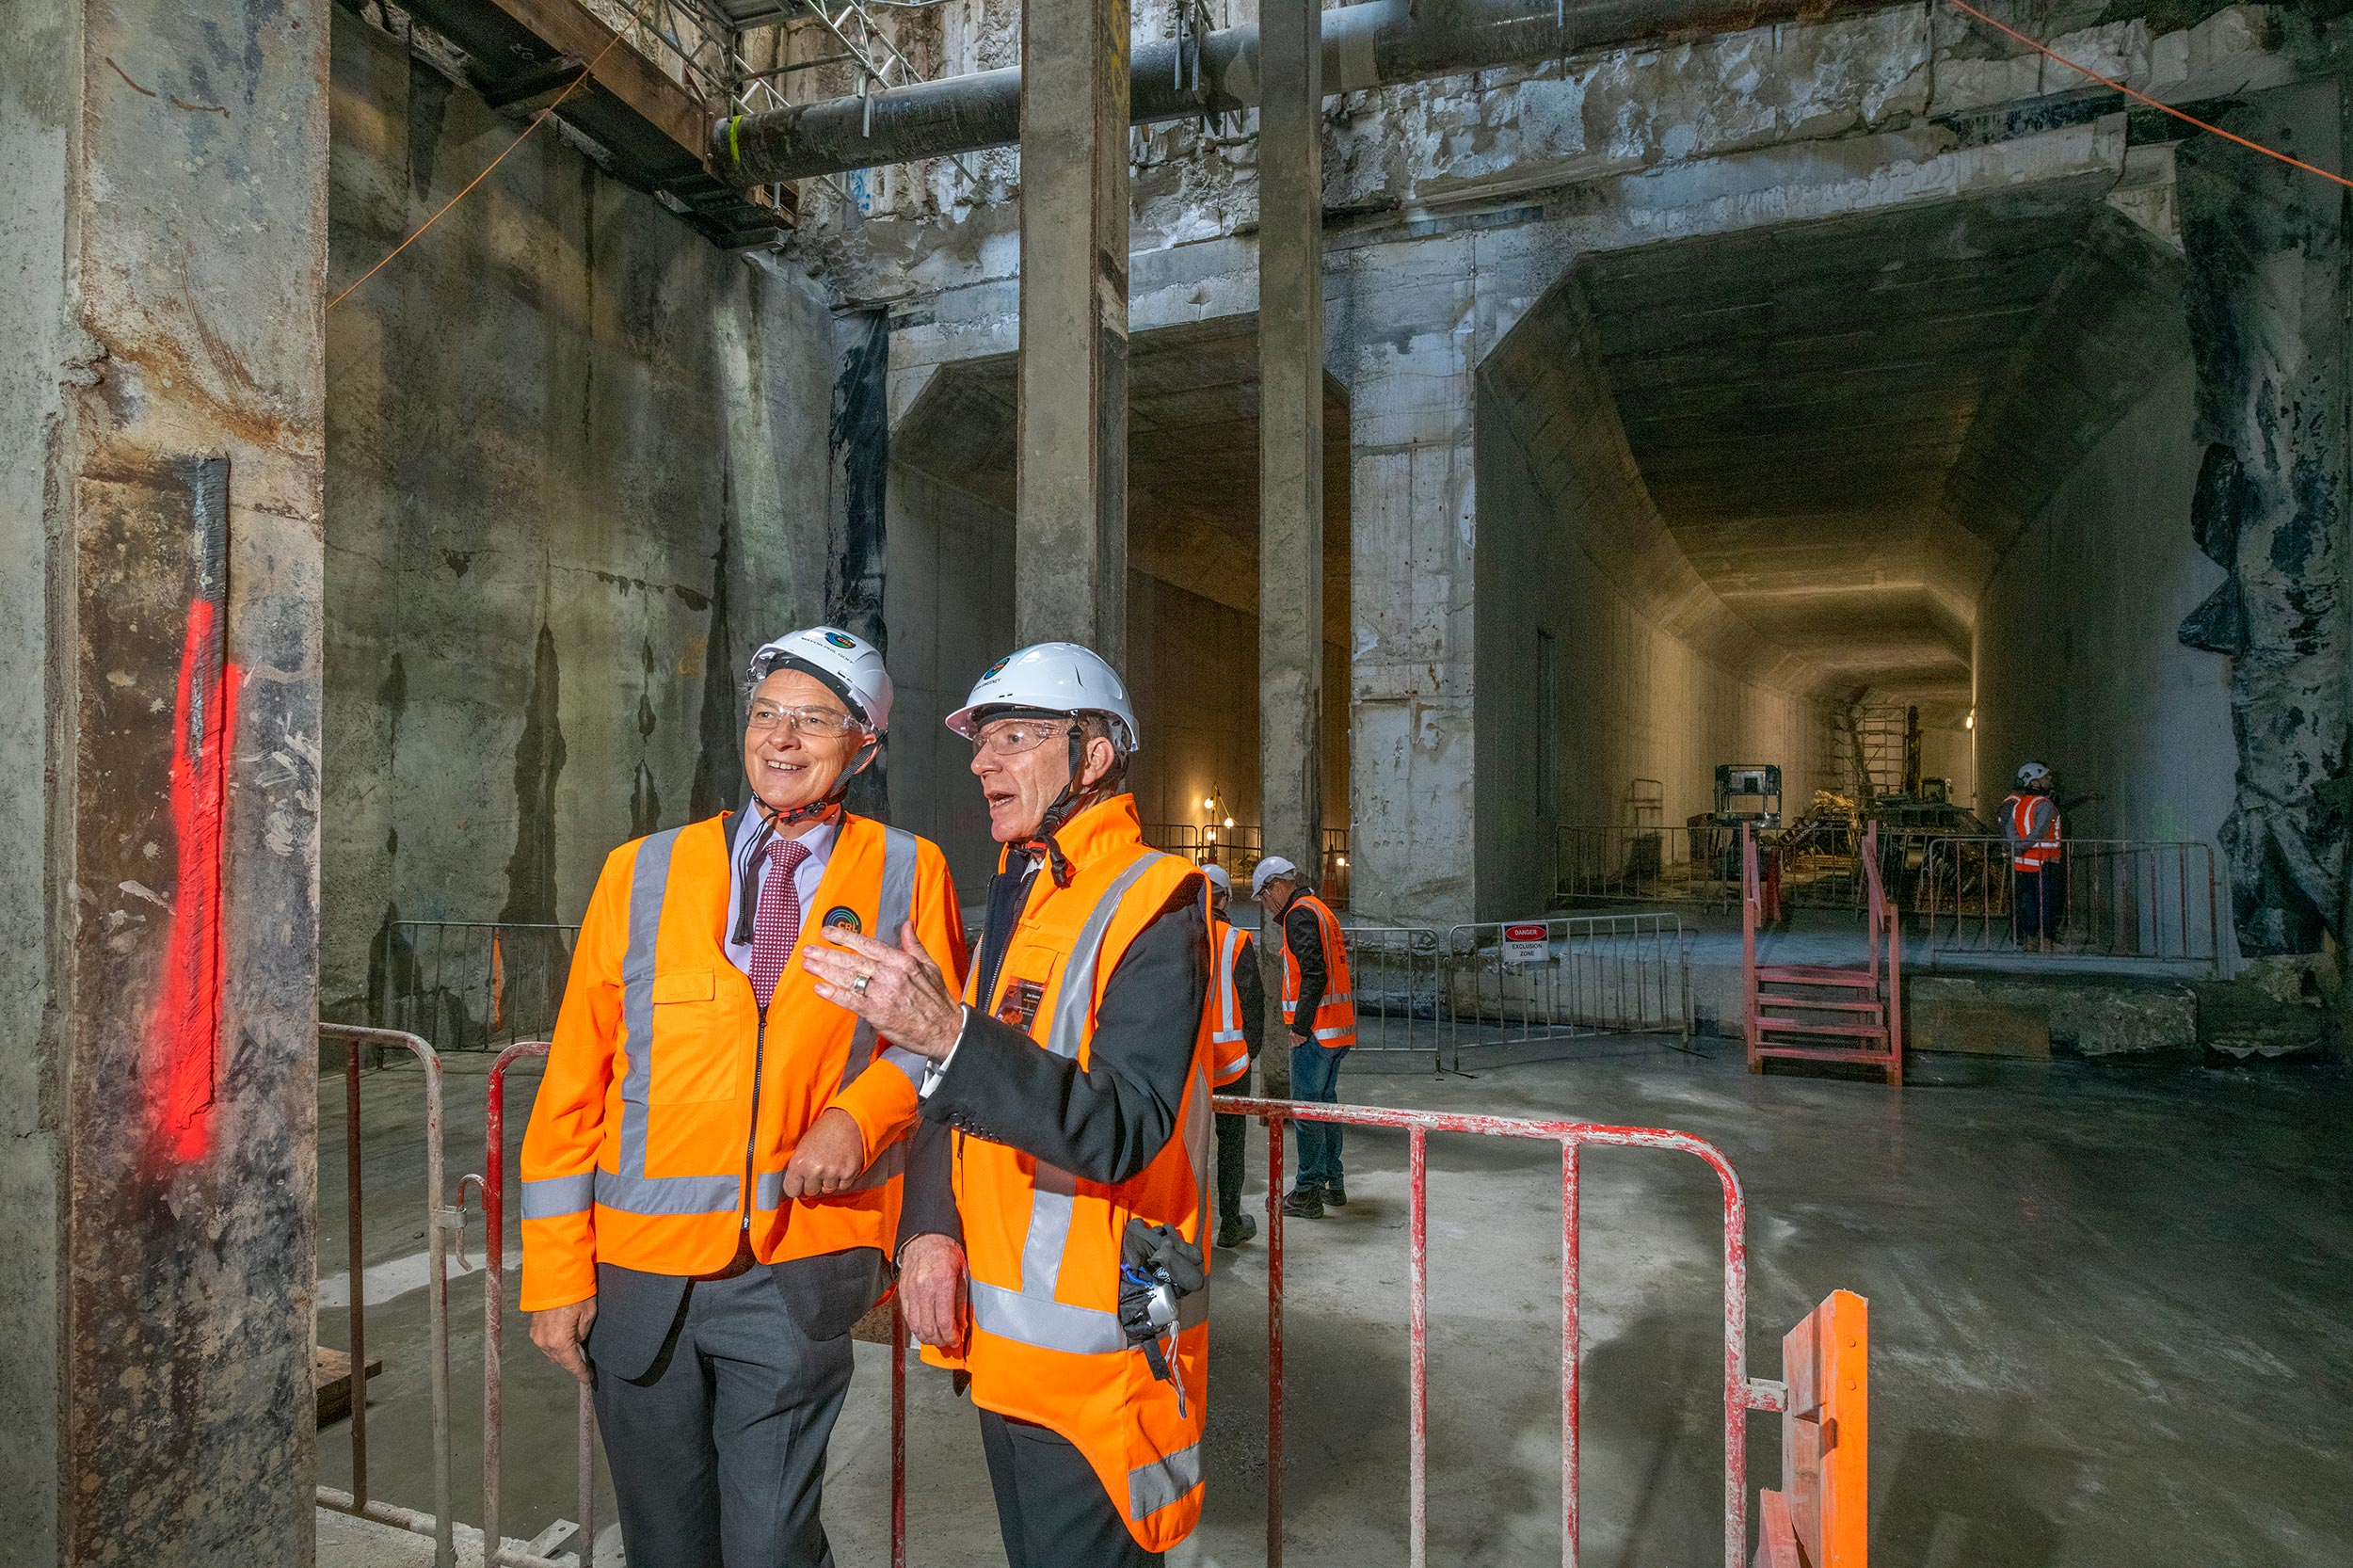 Auckland Mayor Phil Goff stands beside CRL CEO Dr Sean Sweeney at breakthough event 6 December 2018